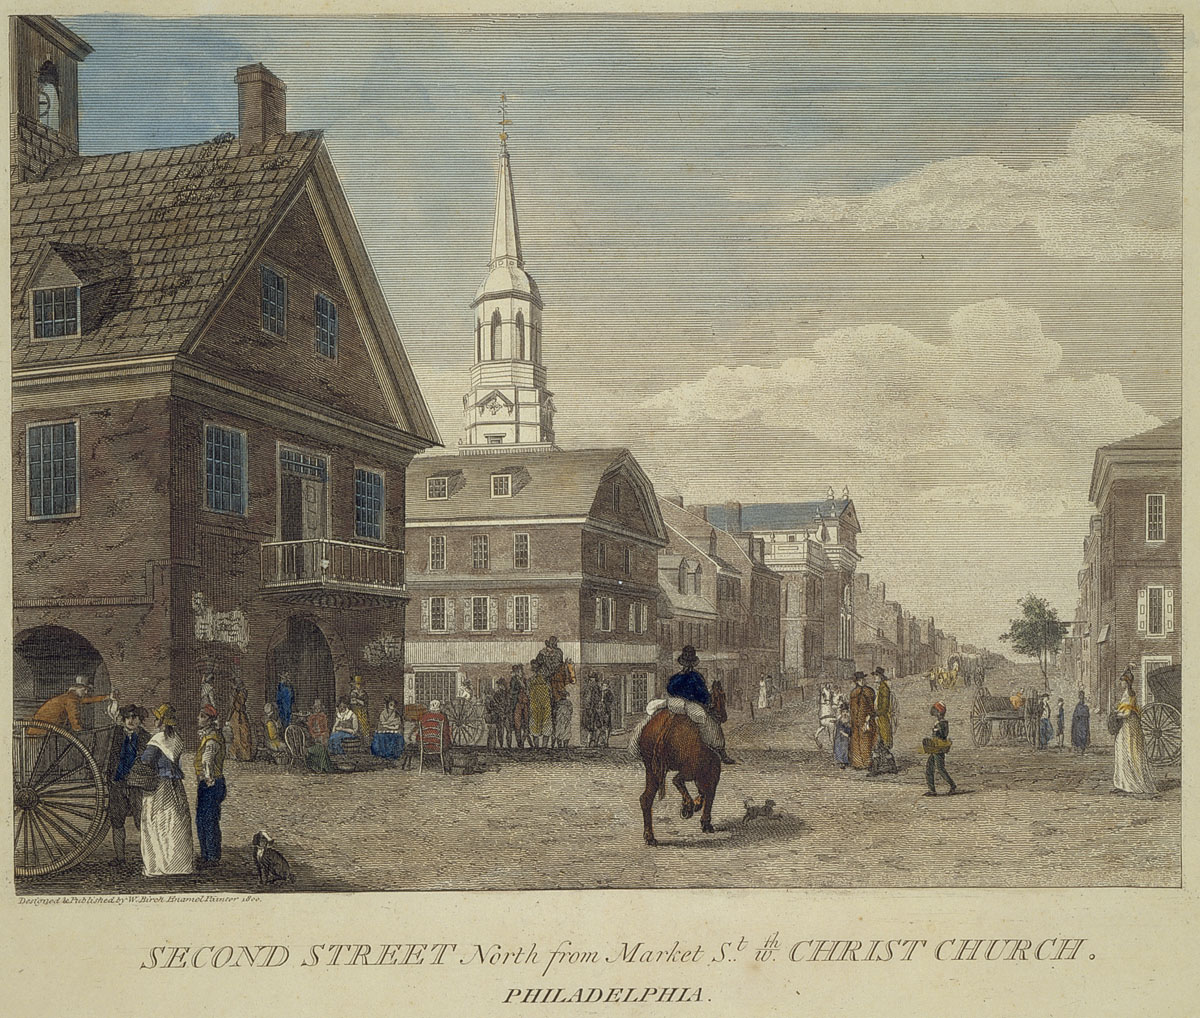 Second Street north from Market St. wth. Christ Church. Philadelphia [graphic] / Designed & Published by W. Birch Enamel Painter 1800.